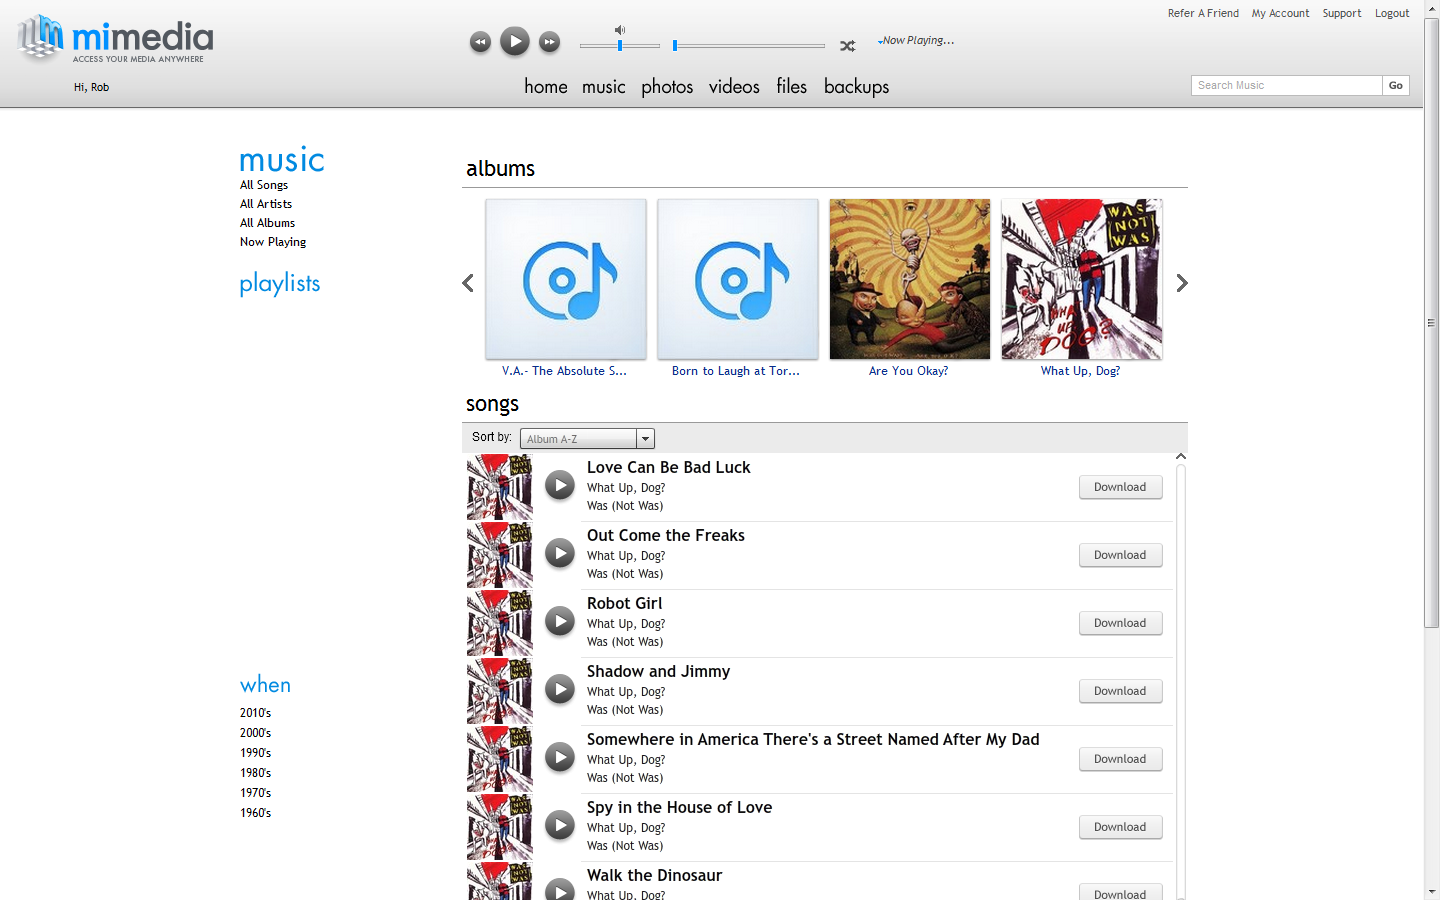 MiMedia music library page